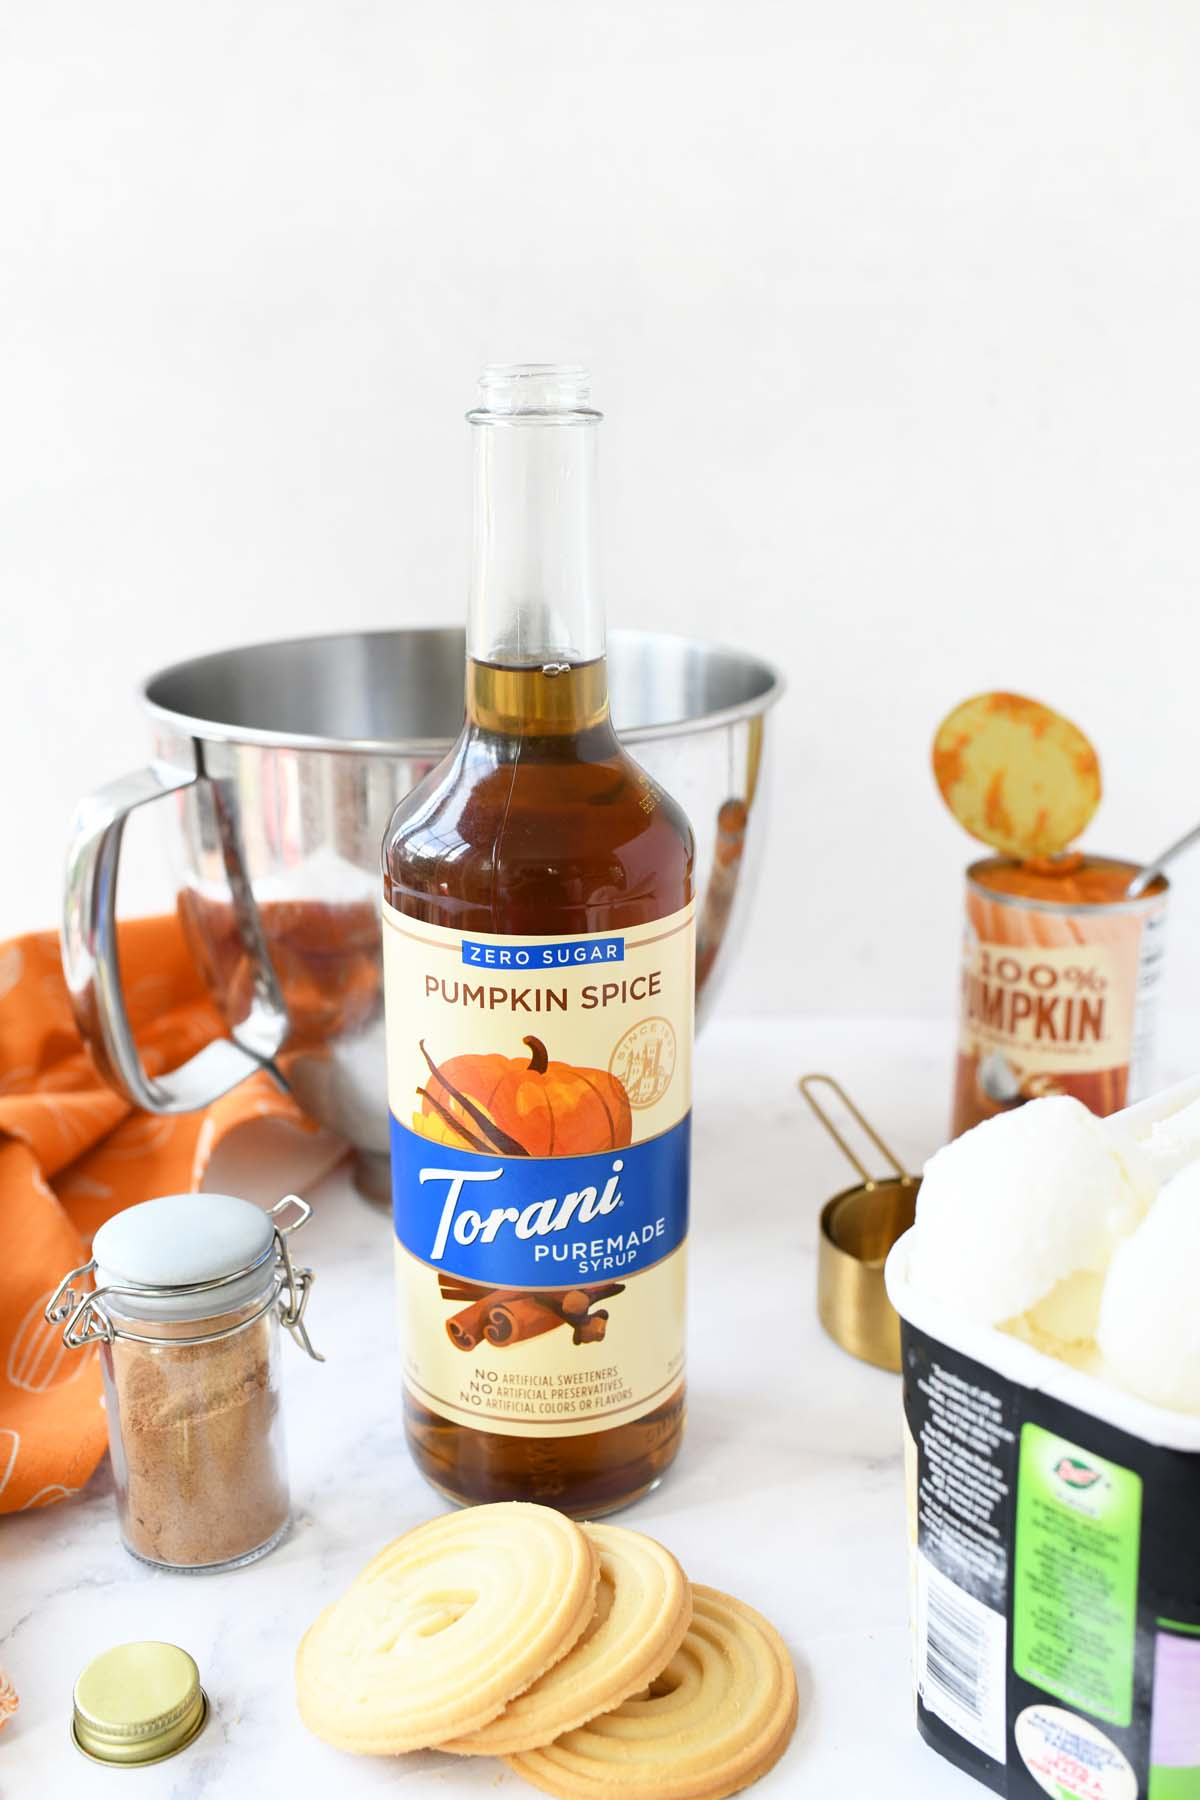 Ingredients for a sugar free pumpkin ice cream treat on a white table.